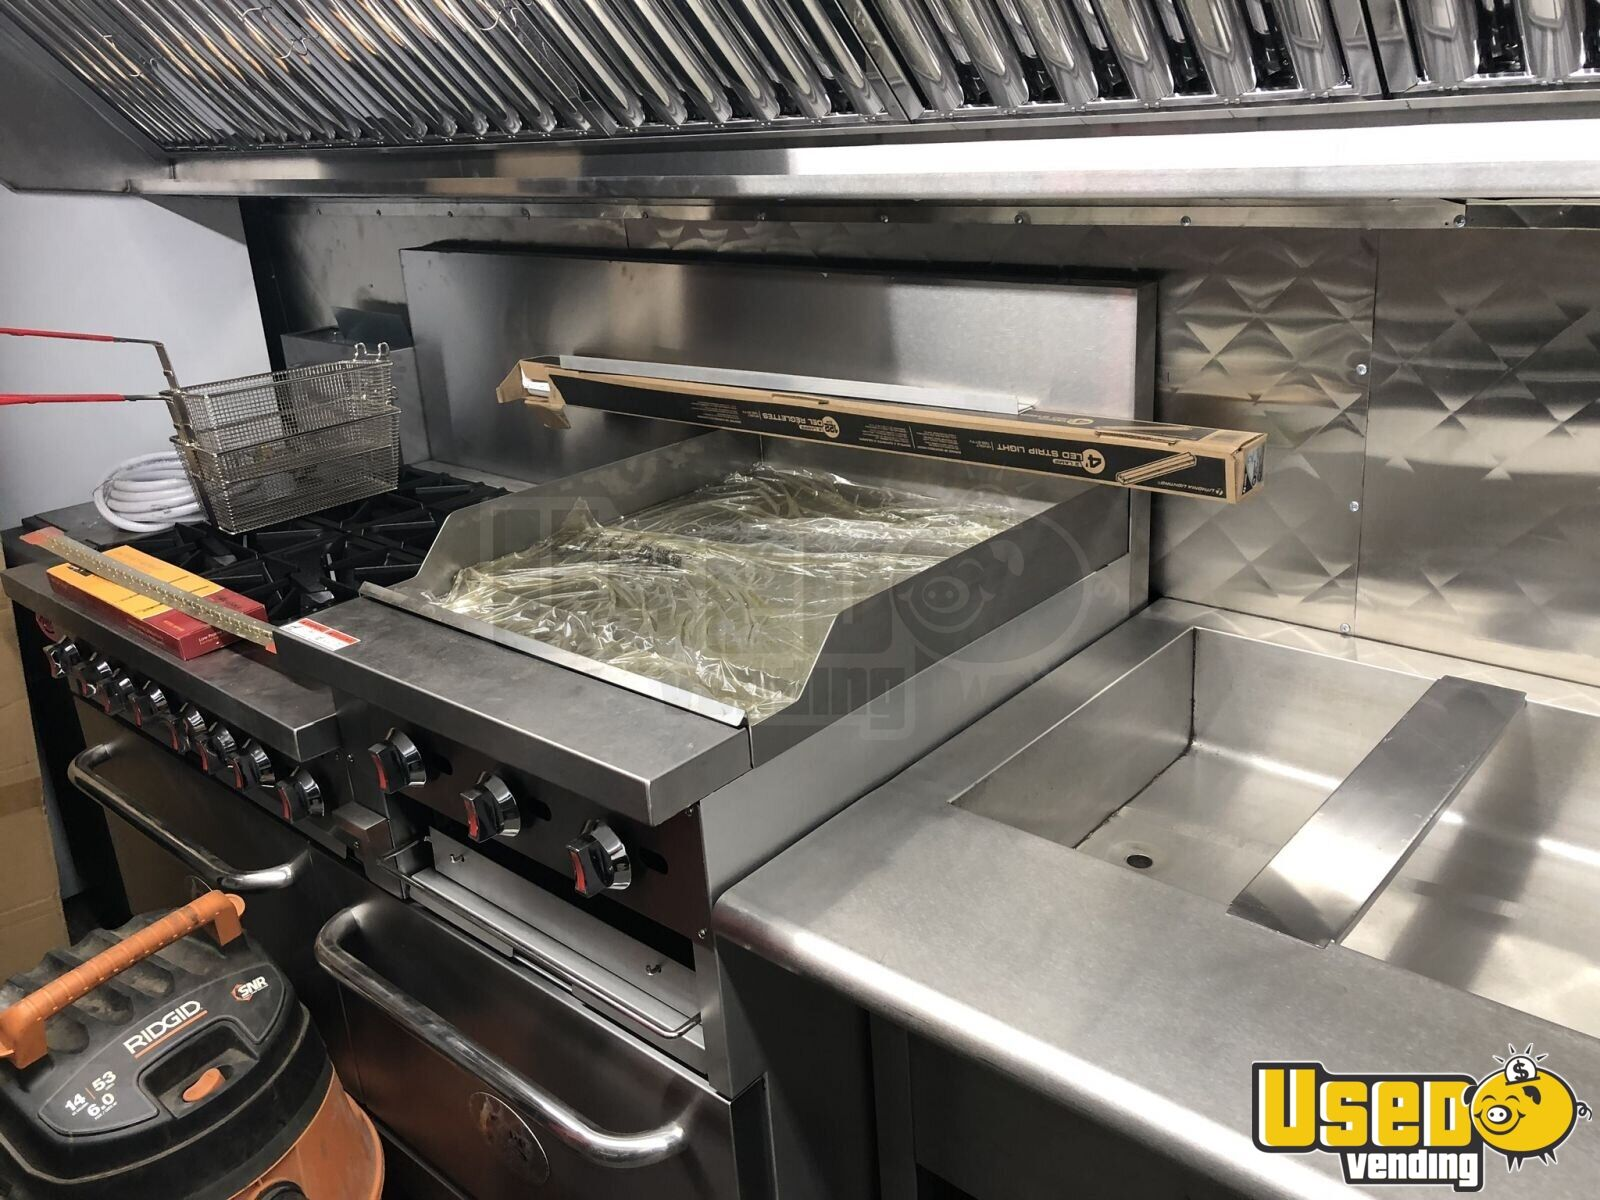 2007 320 Kitchen Food Truck All-purpose Food Truck Insulated Walls New York Diesel Engine for Sale - 6